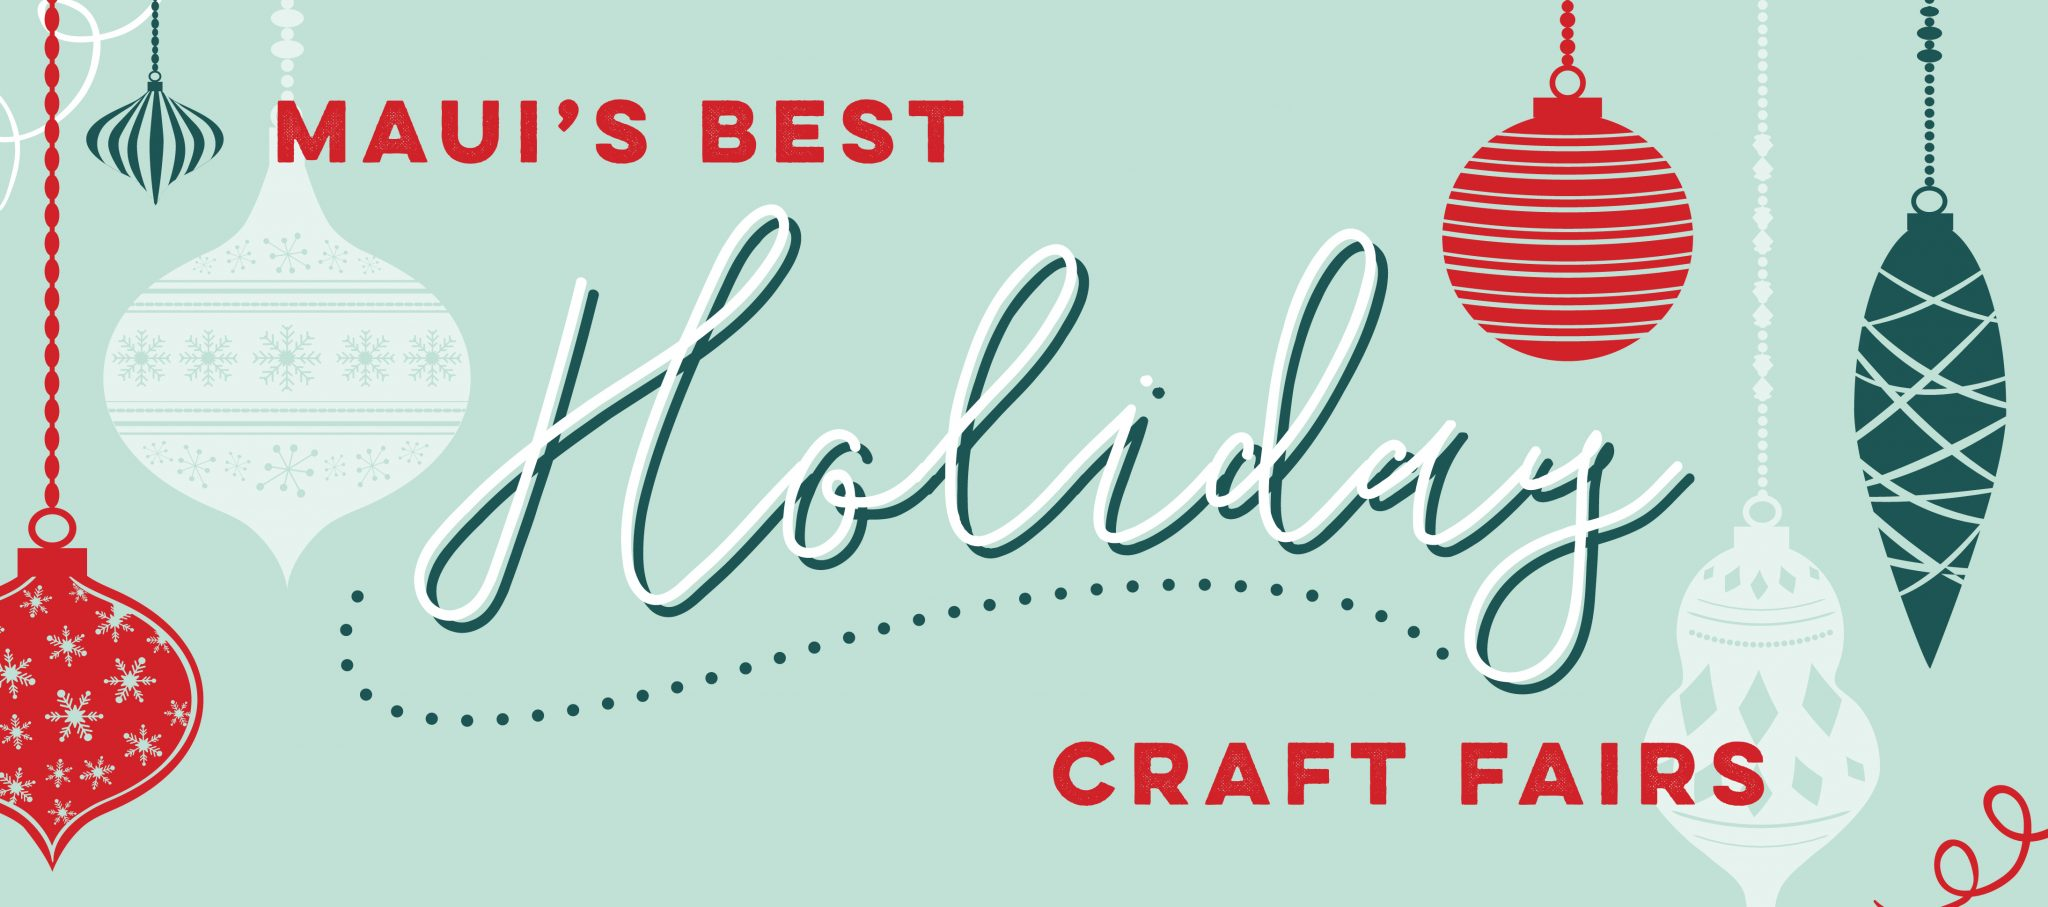 Maui's Best Holiday Craft Fairs 2019